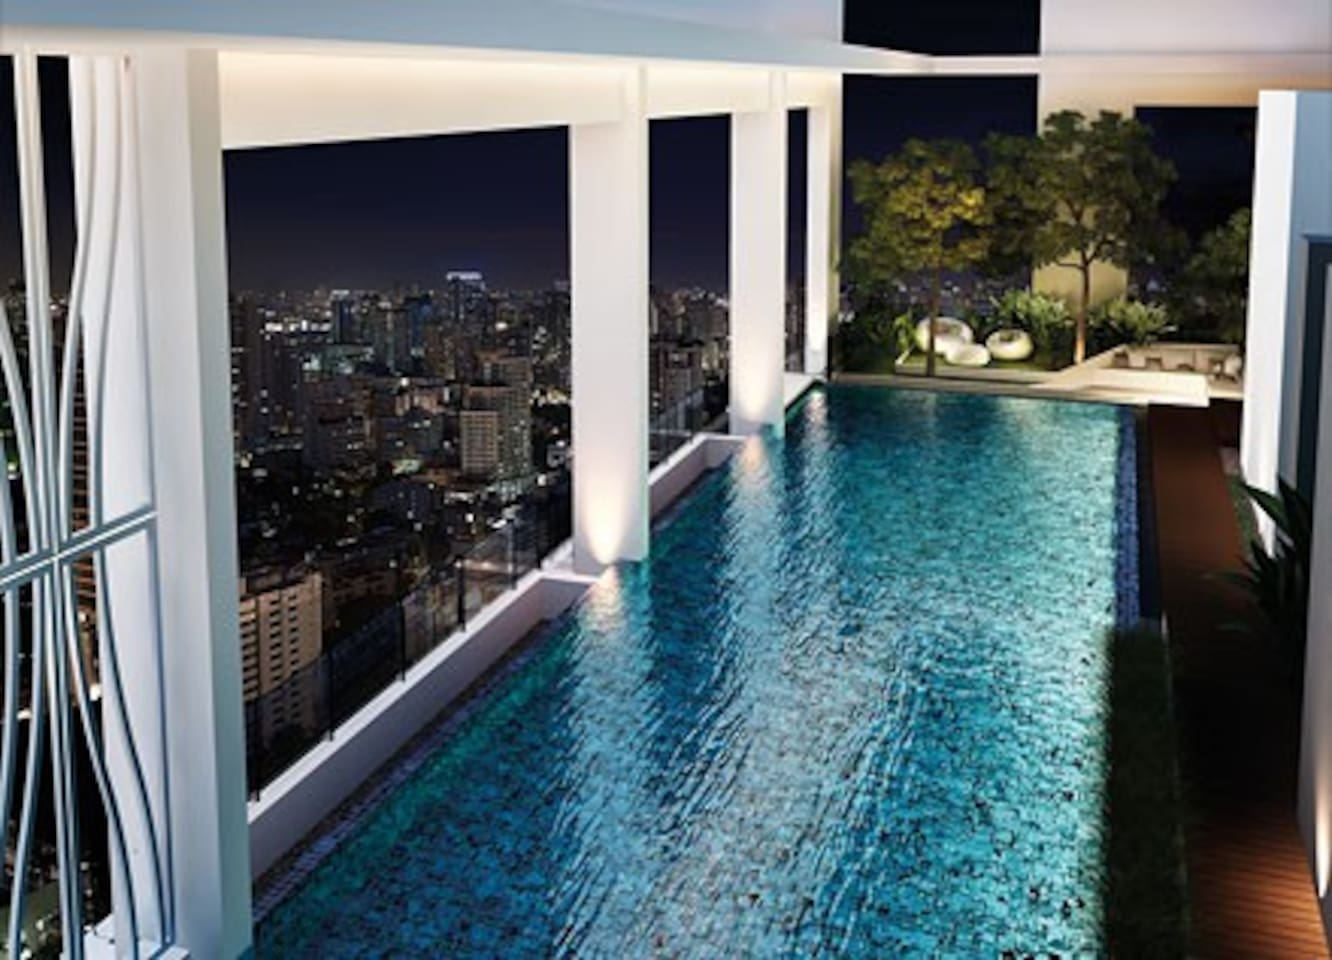 Rooftop Swimming pool,Sauna and Jacuzzi